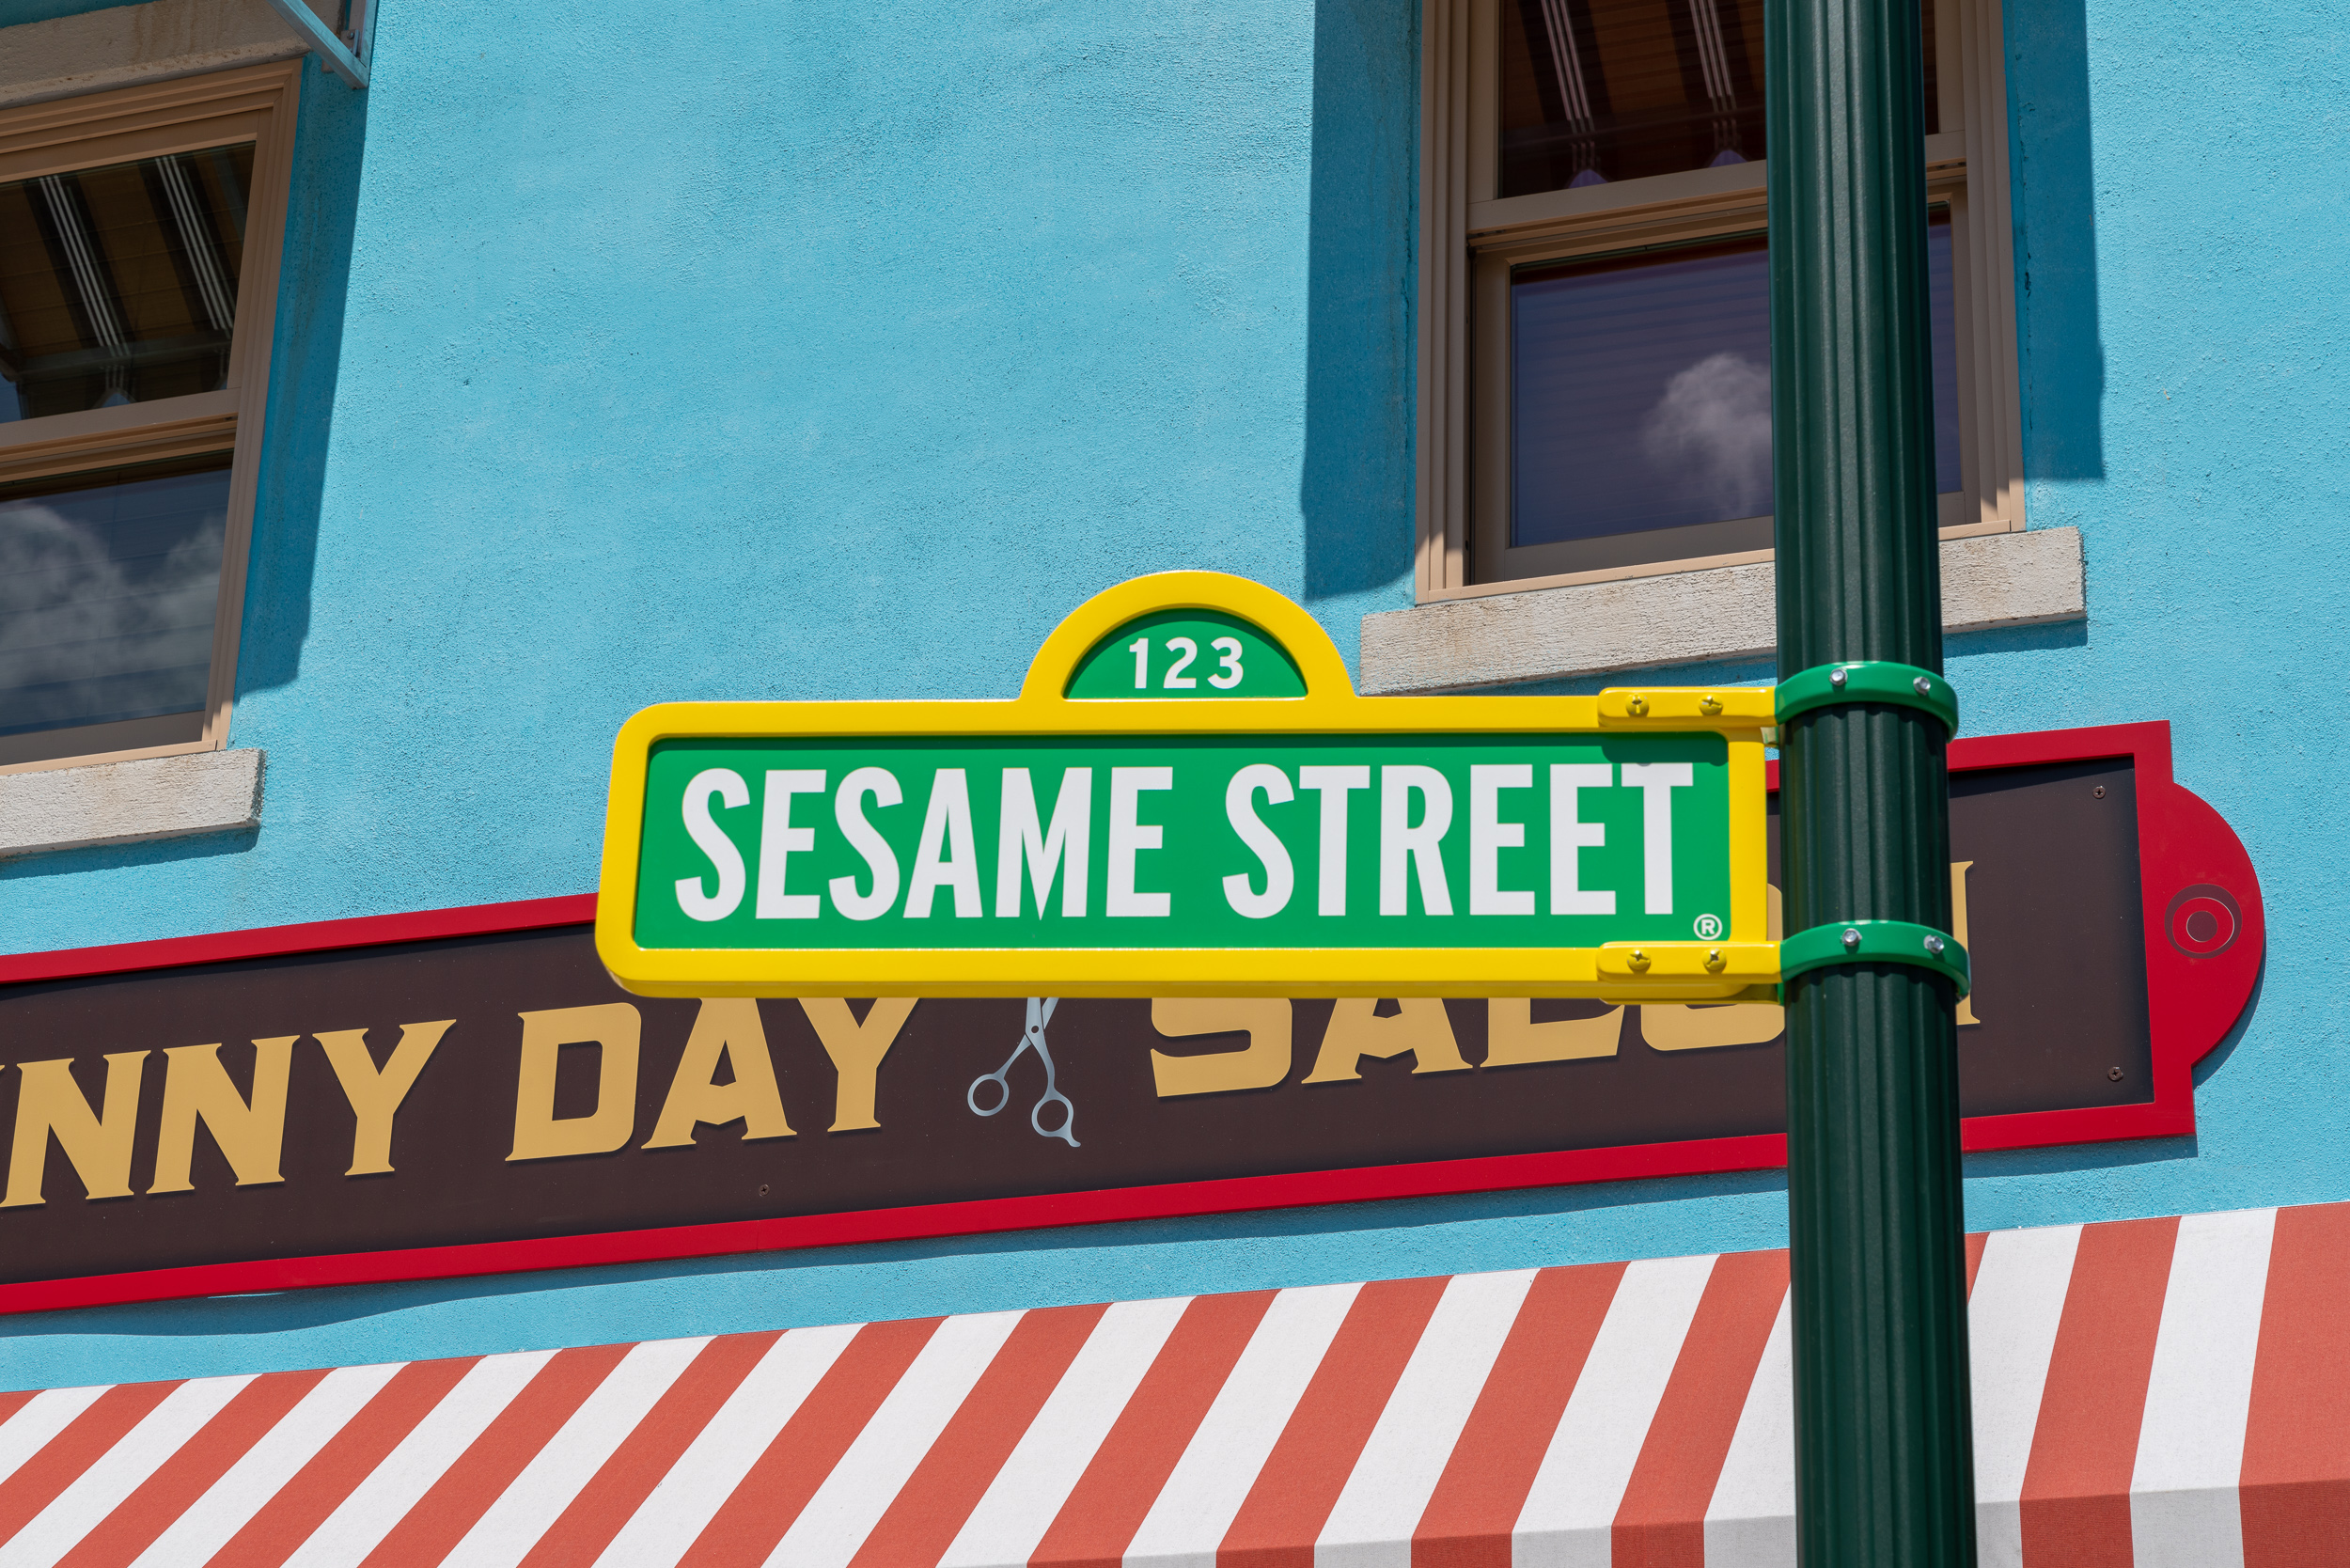 Sesame Street is the most detailed area of SeaWorld